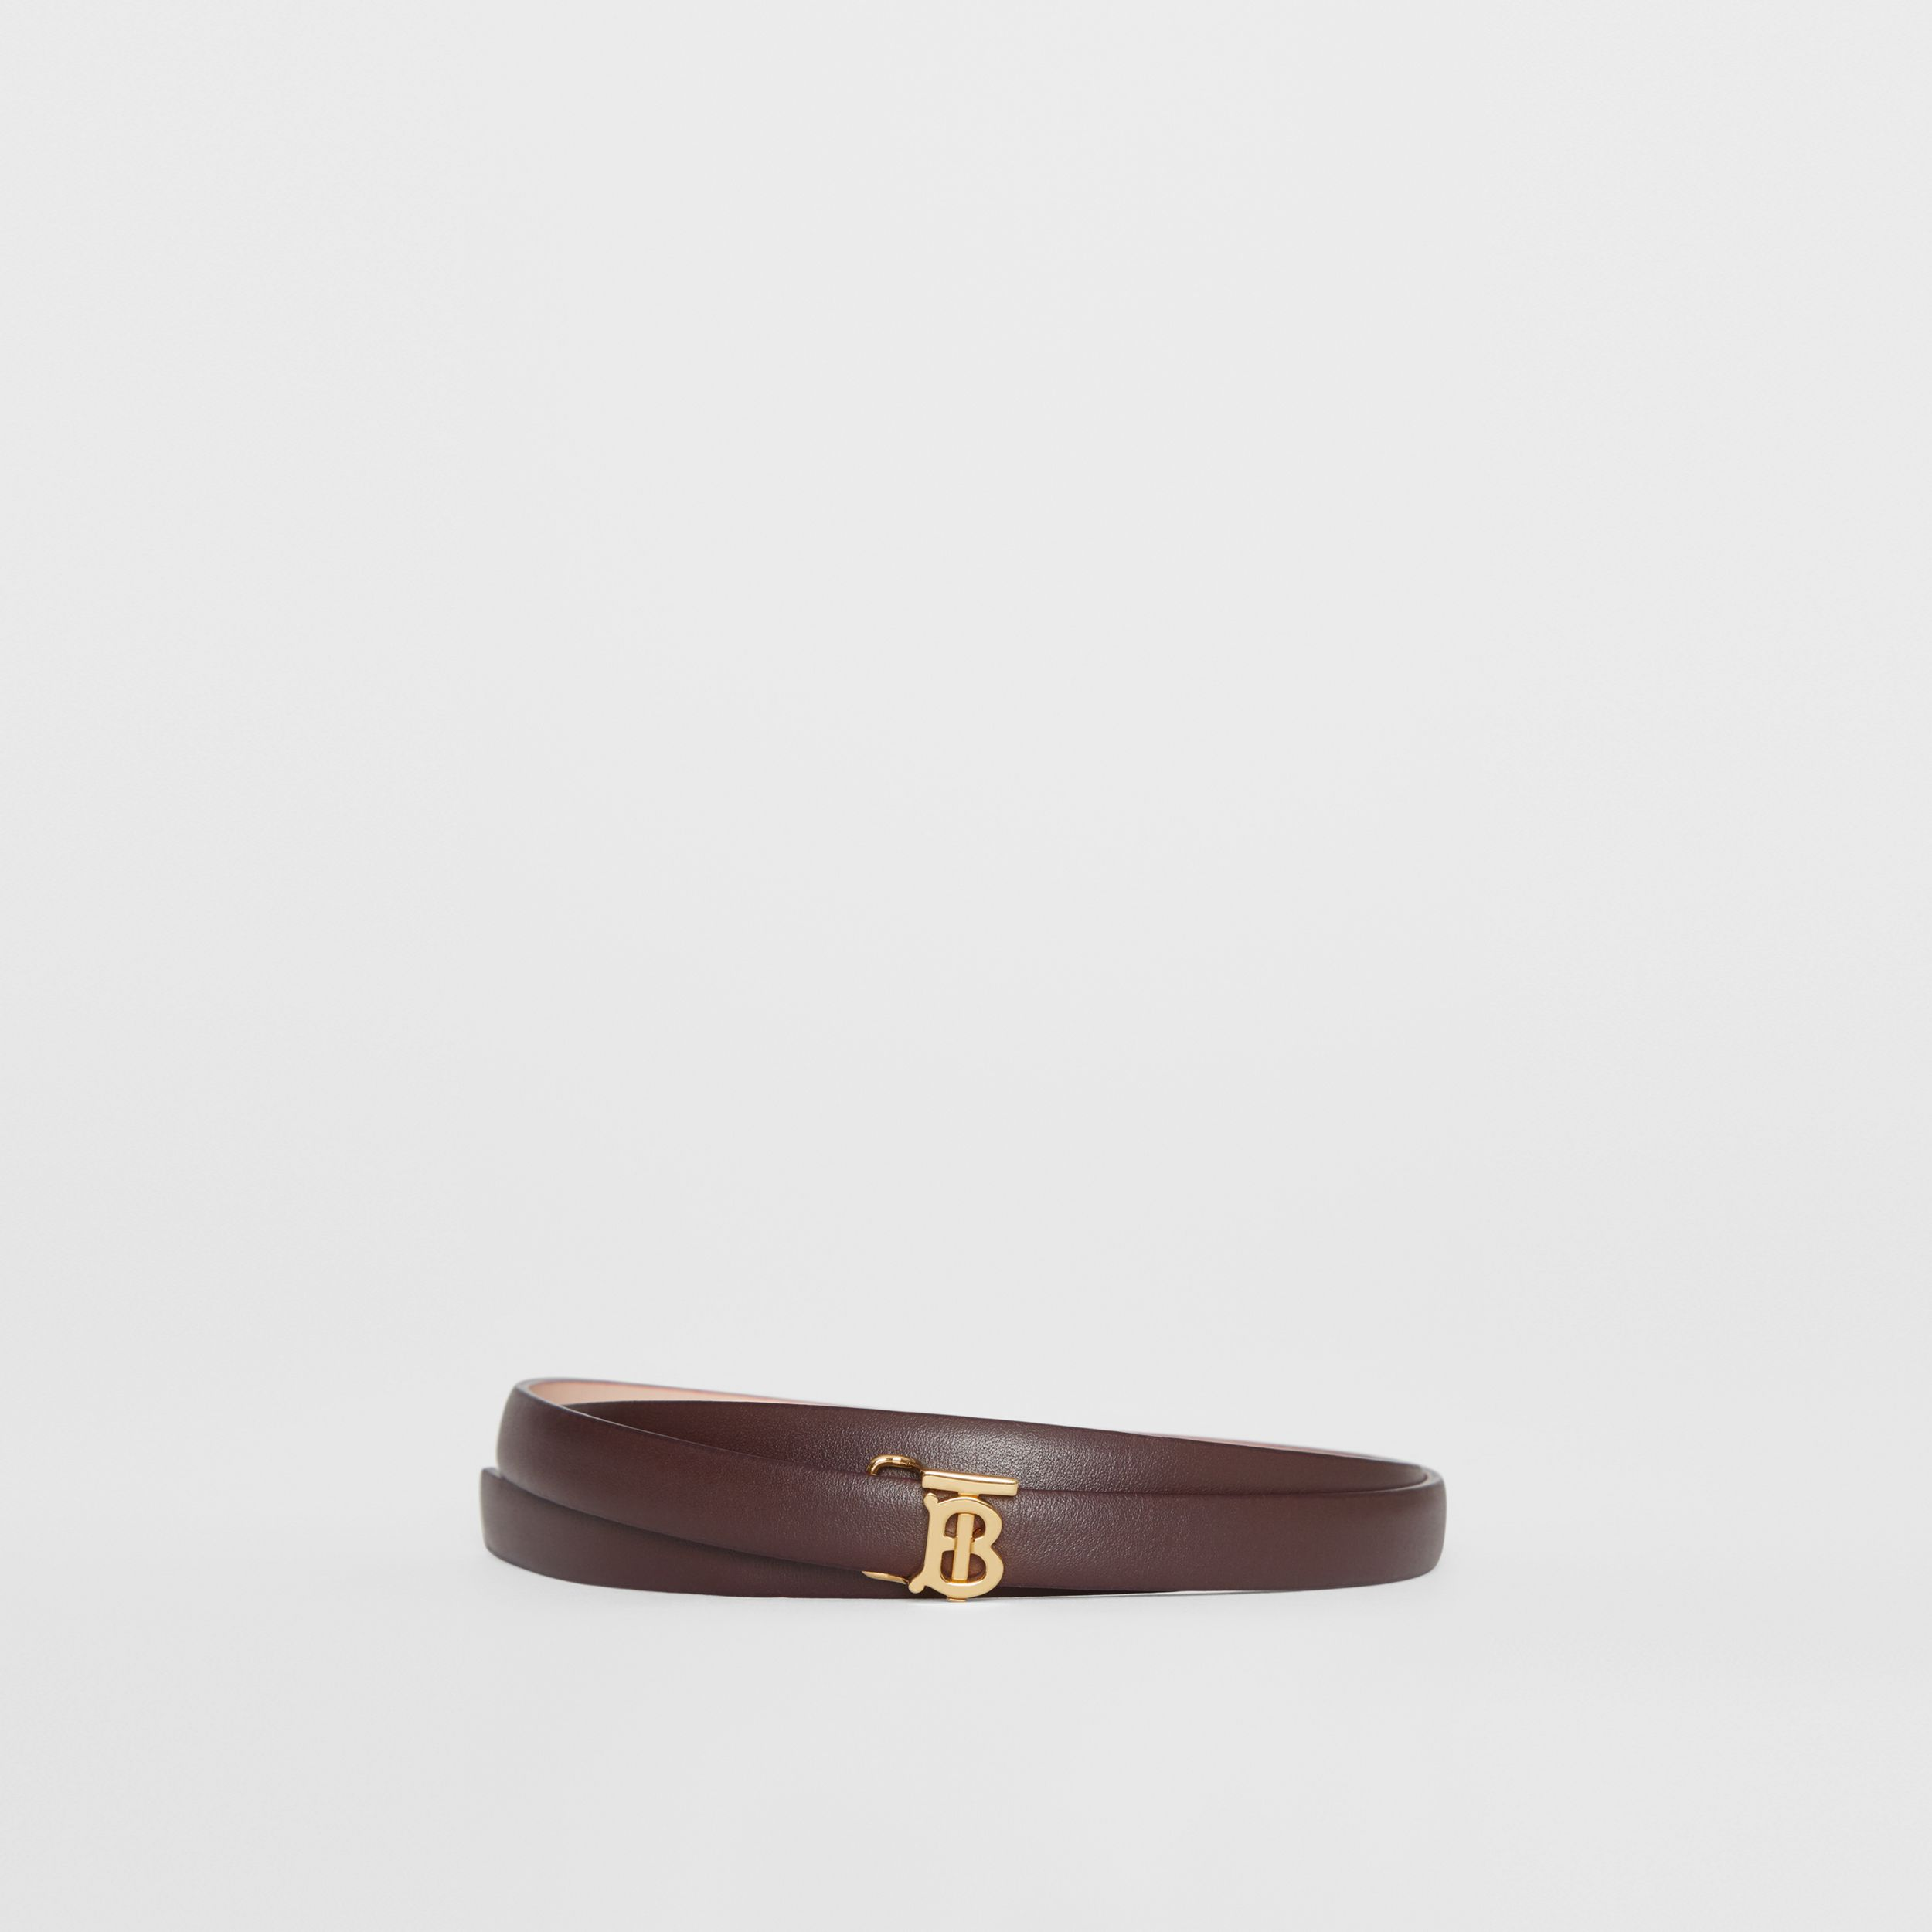 Reversible Monogram Motif Leather Wrap Belt in Oxblood/rose Beige - Women | Burberry - 1